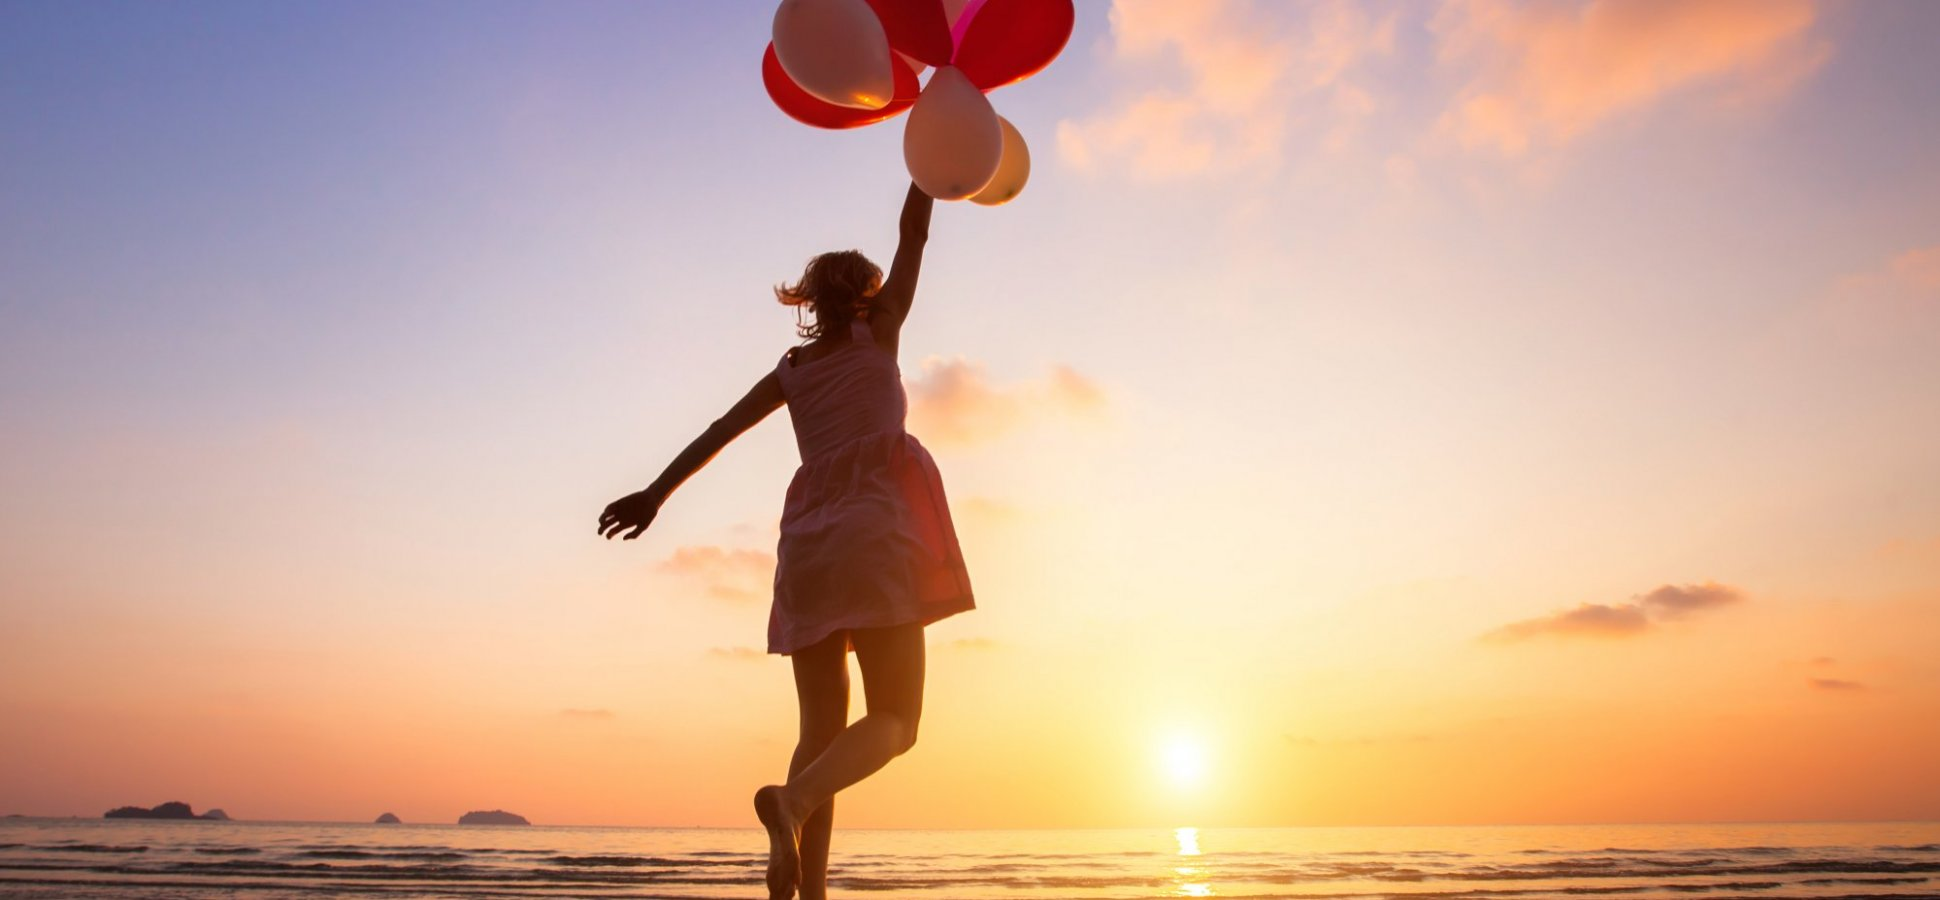 How to Make More Space for Your Dreams